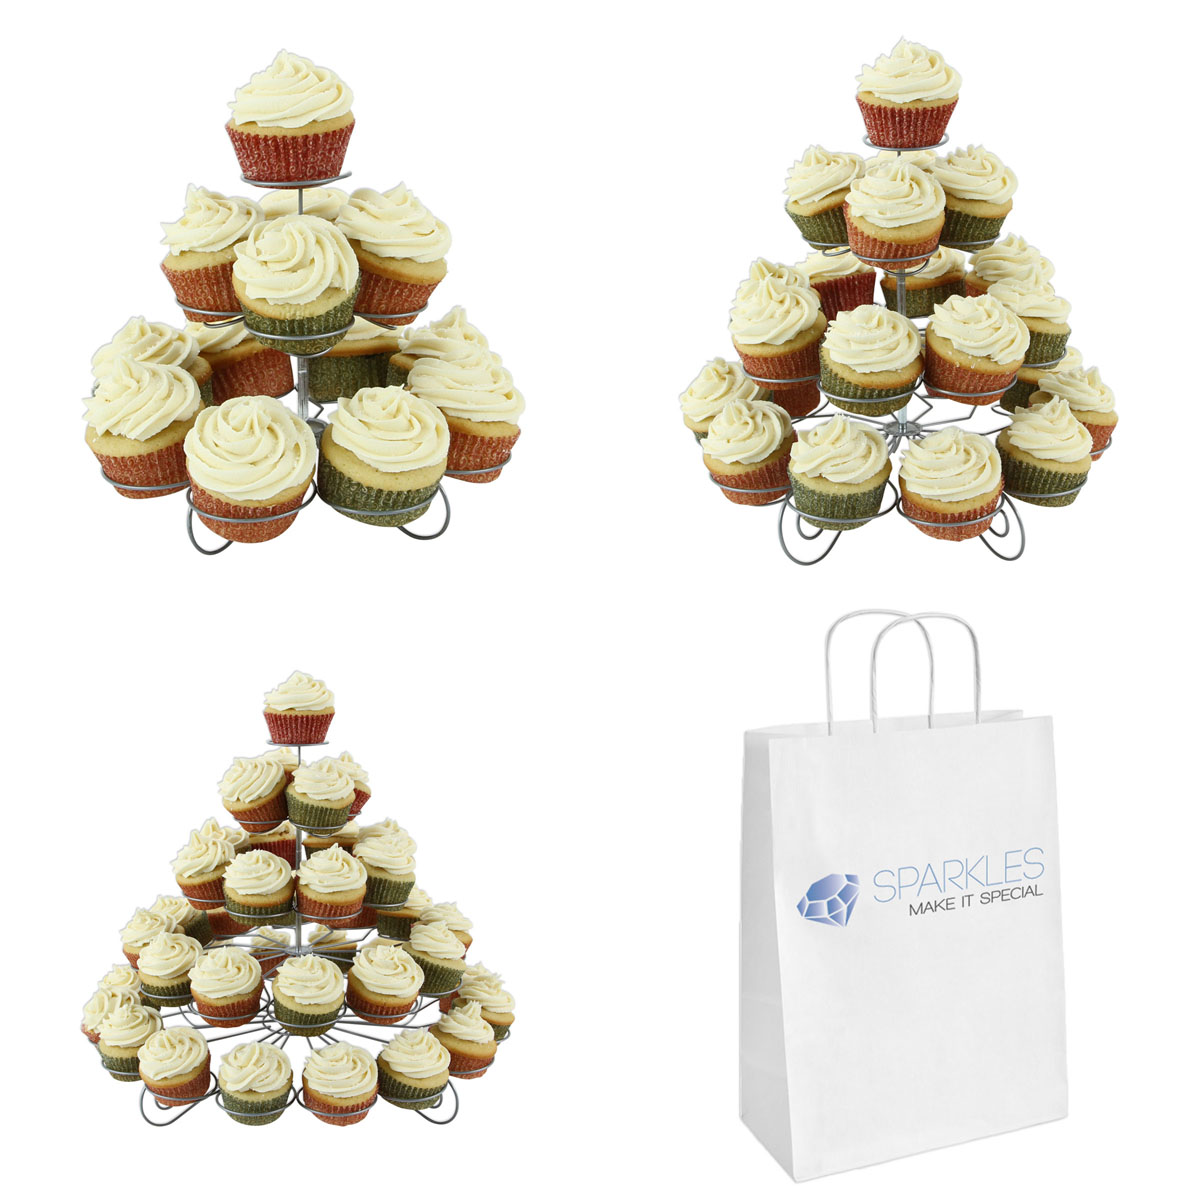 Spiral Wire Cupcake Stand - 3 Sizes